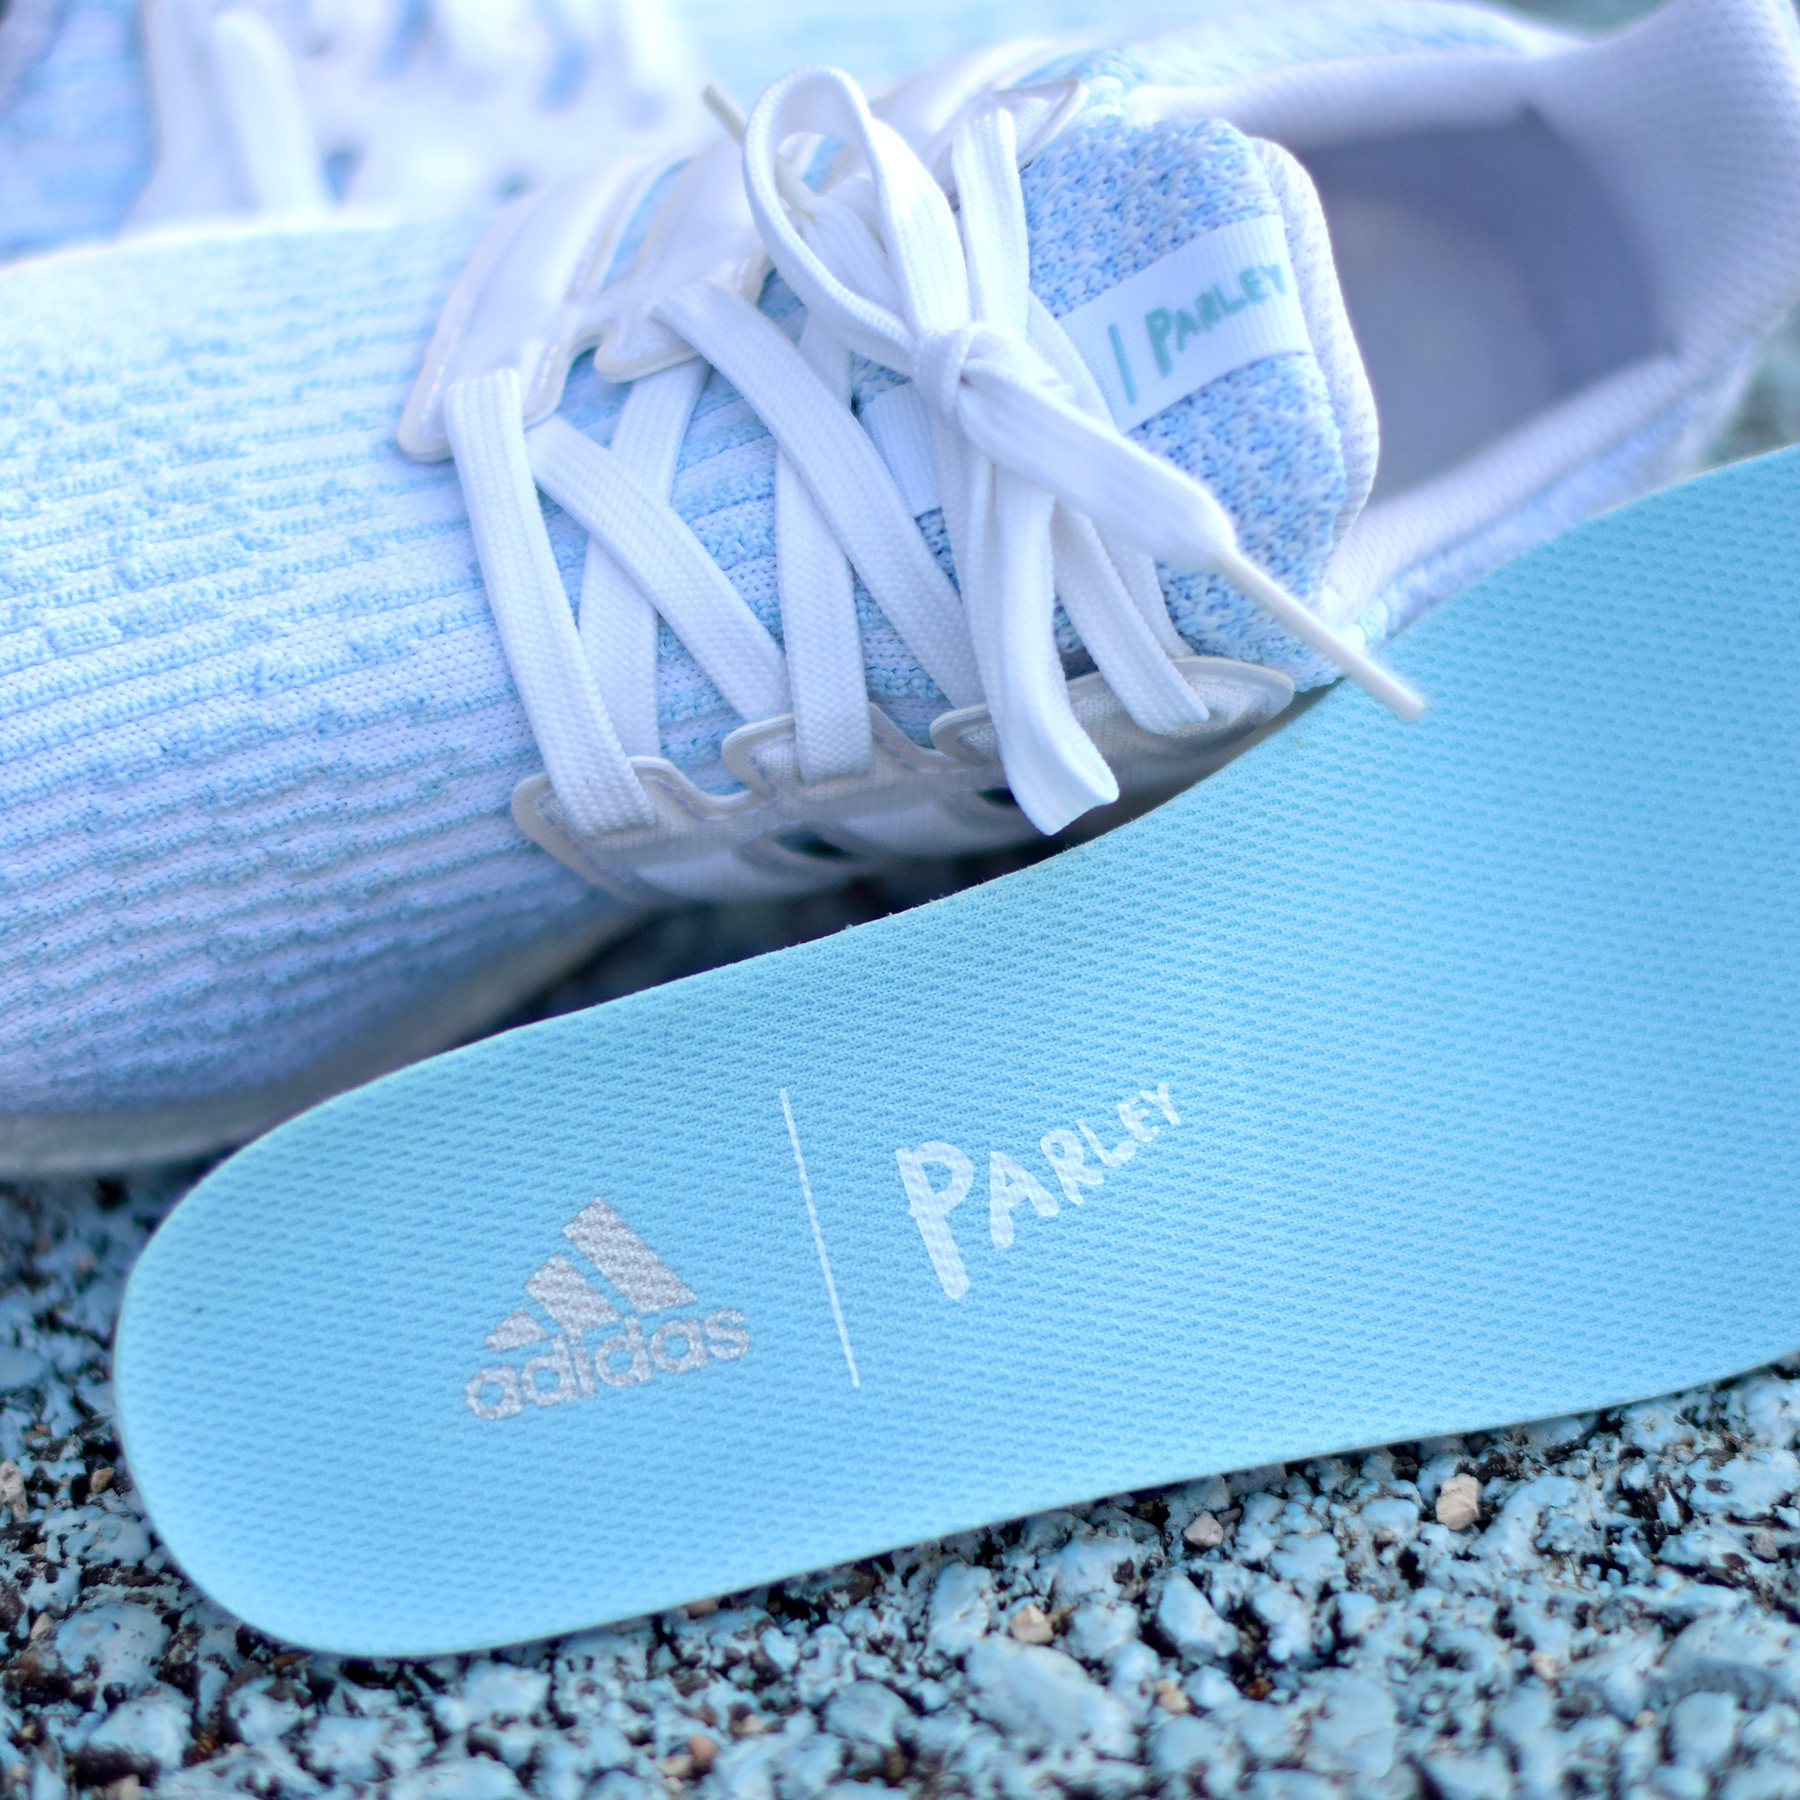 5775fa0b1c37fb A New Parley x adidas UltraBoost 3.0  Ice Blue  is Coming - WearTesters